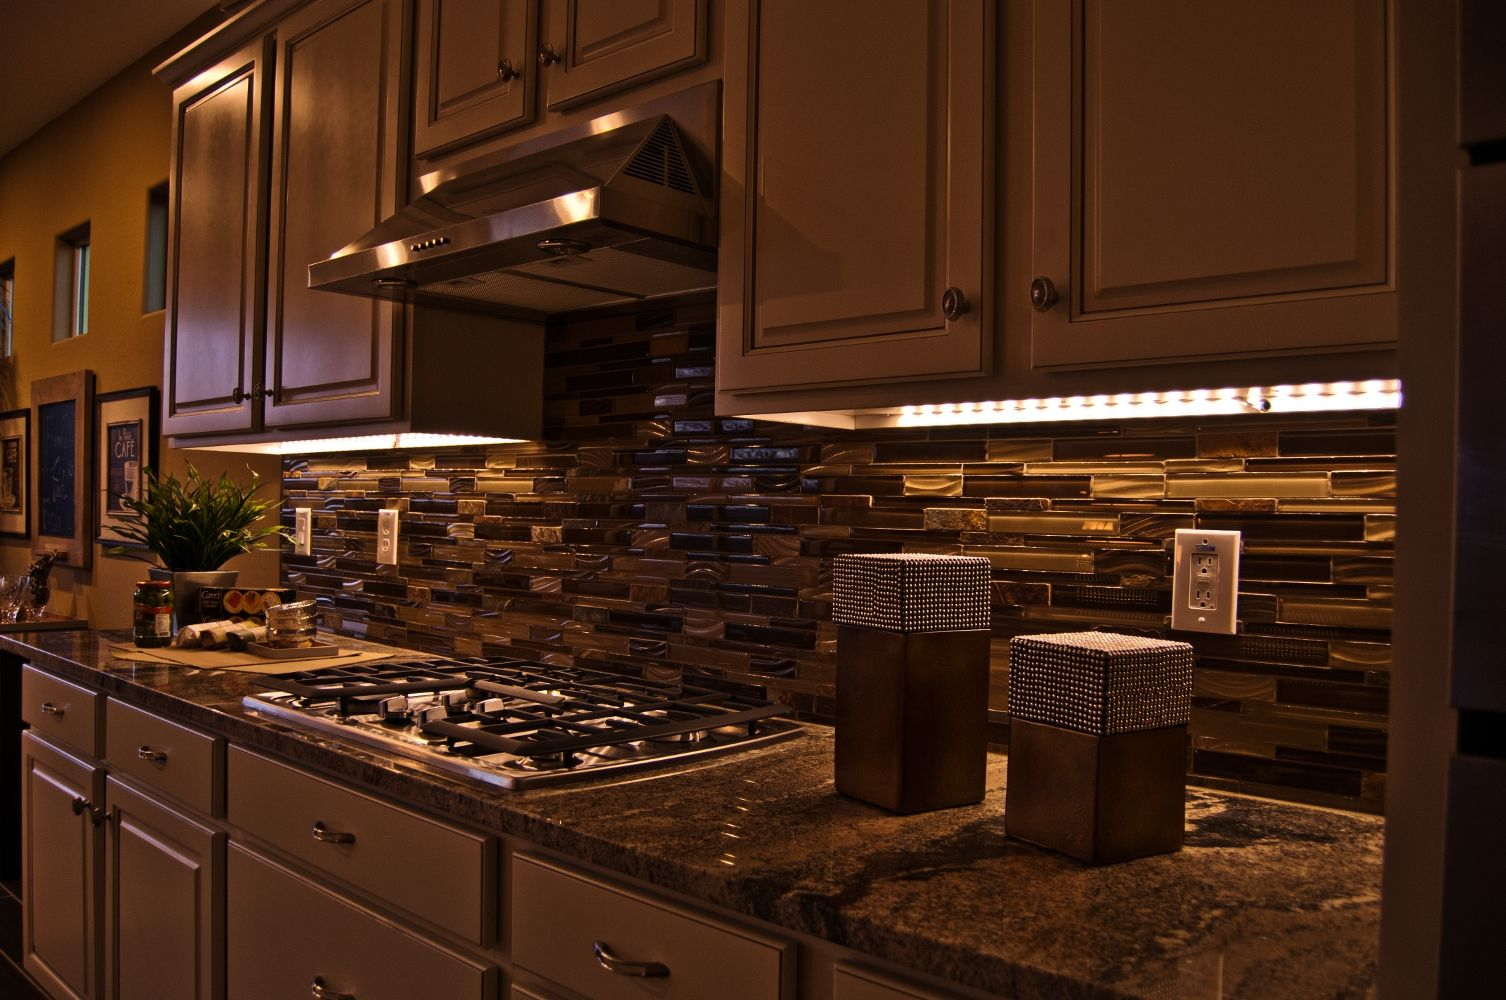 The Most Amazing Dimmable Led Under Cabinet Lighting Kitchen Intended For Fantasy